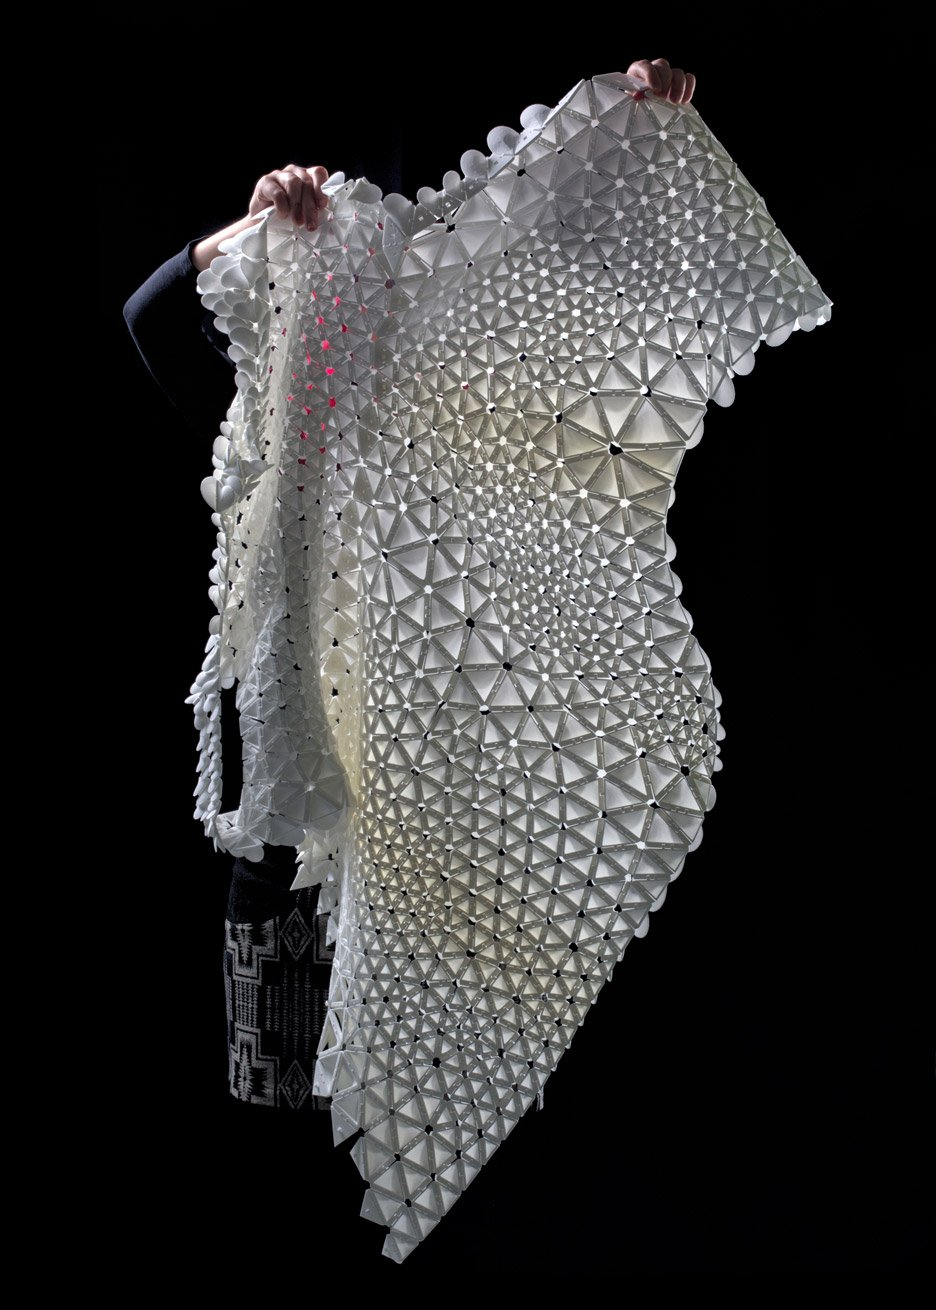 Nervous System creates 4D-printed Petals Dress